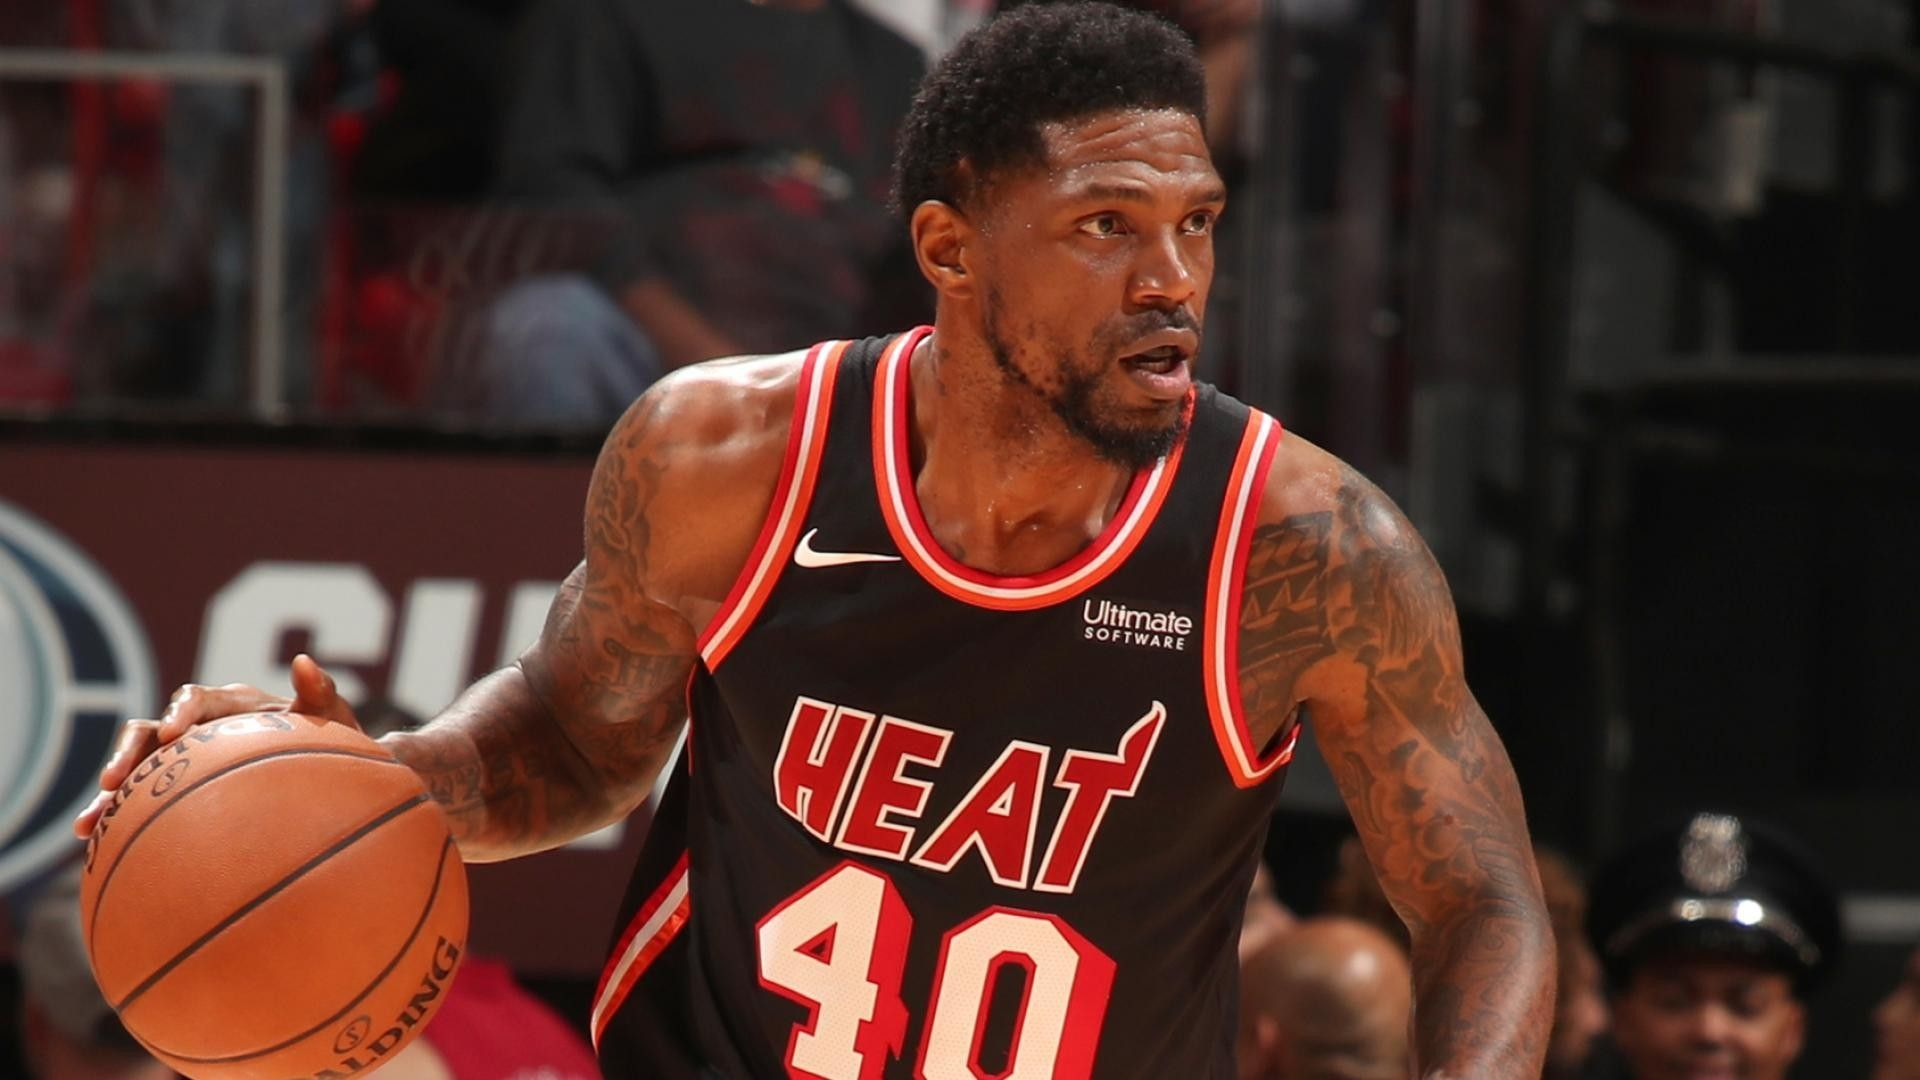 The Miami Heat And Udonis Haslem Agree To A New Contract Nba News National Basketball Association Basketball Association